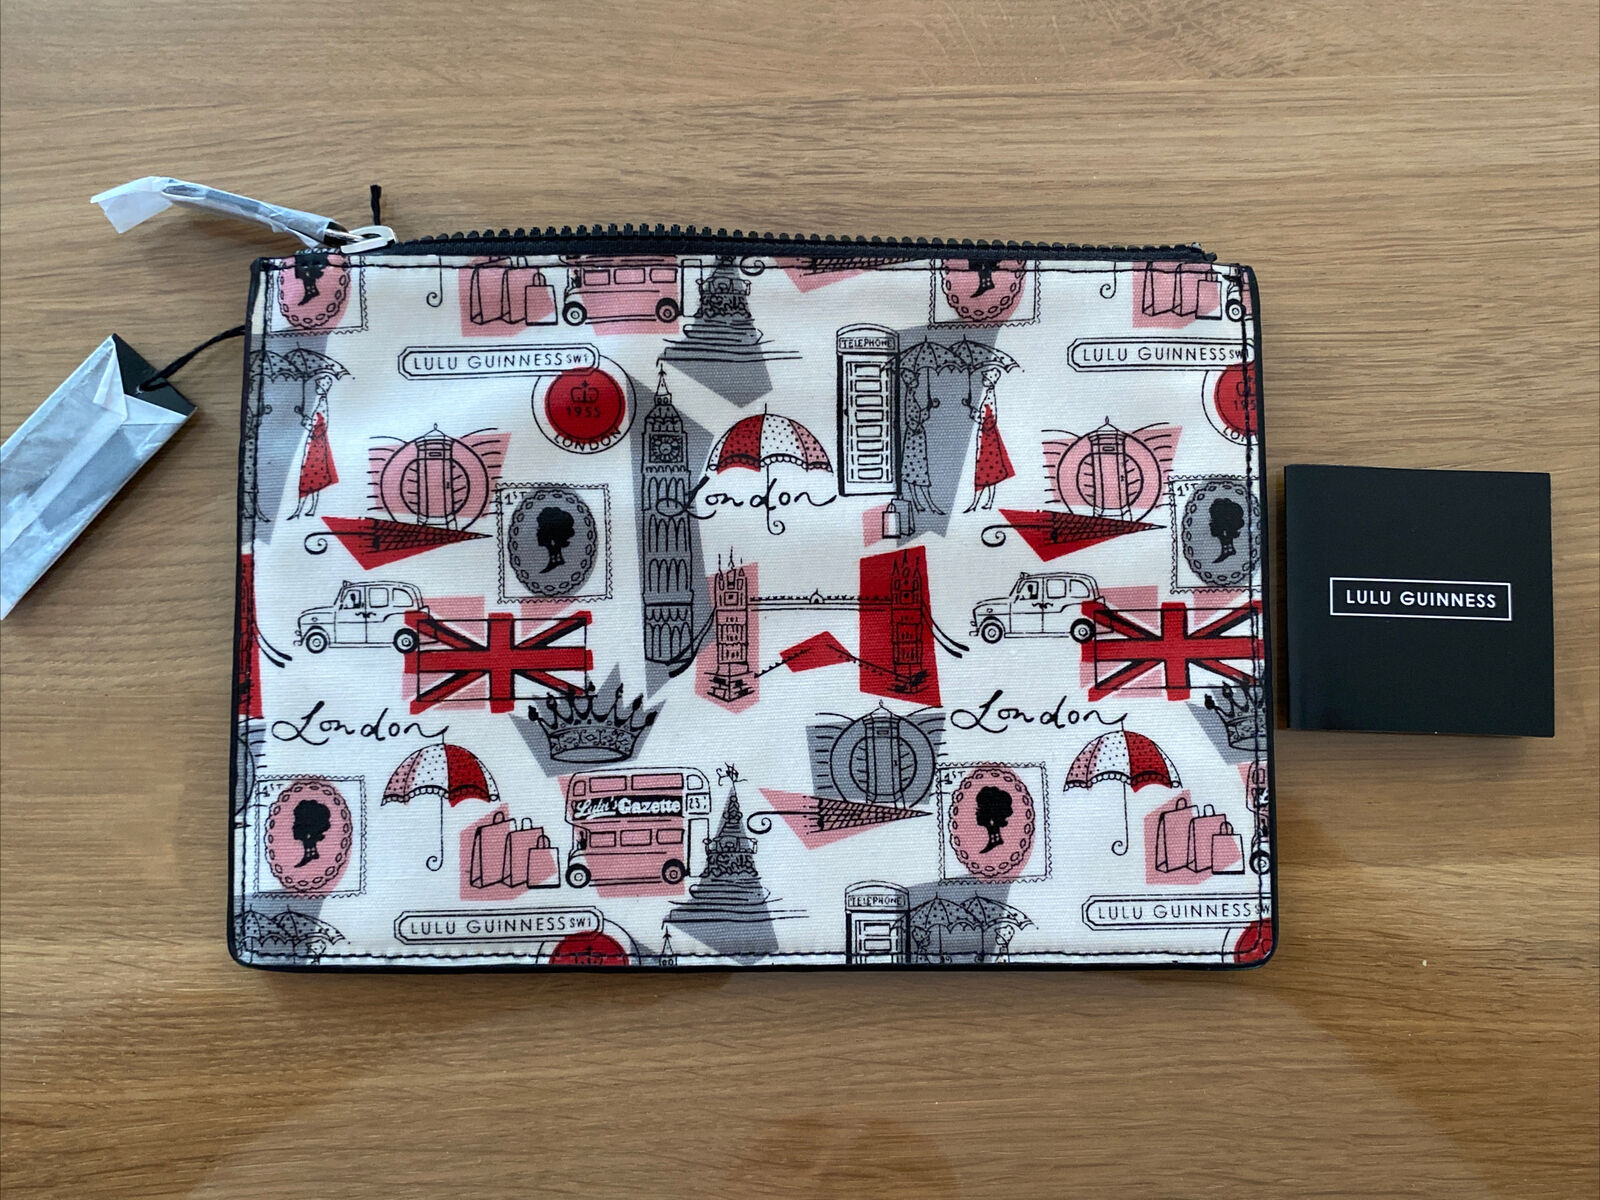 Lulu Guinness 'London Print' Laminate Pouch Bag - New Sealed With Tags - Medium